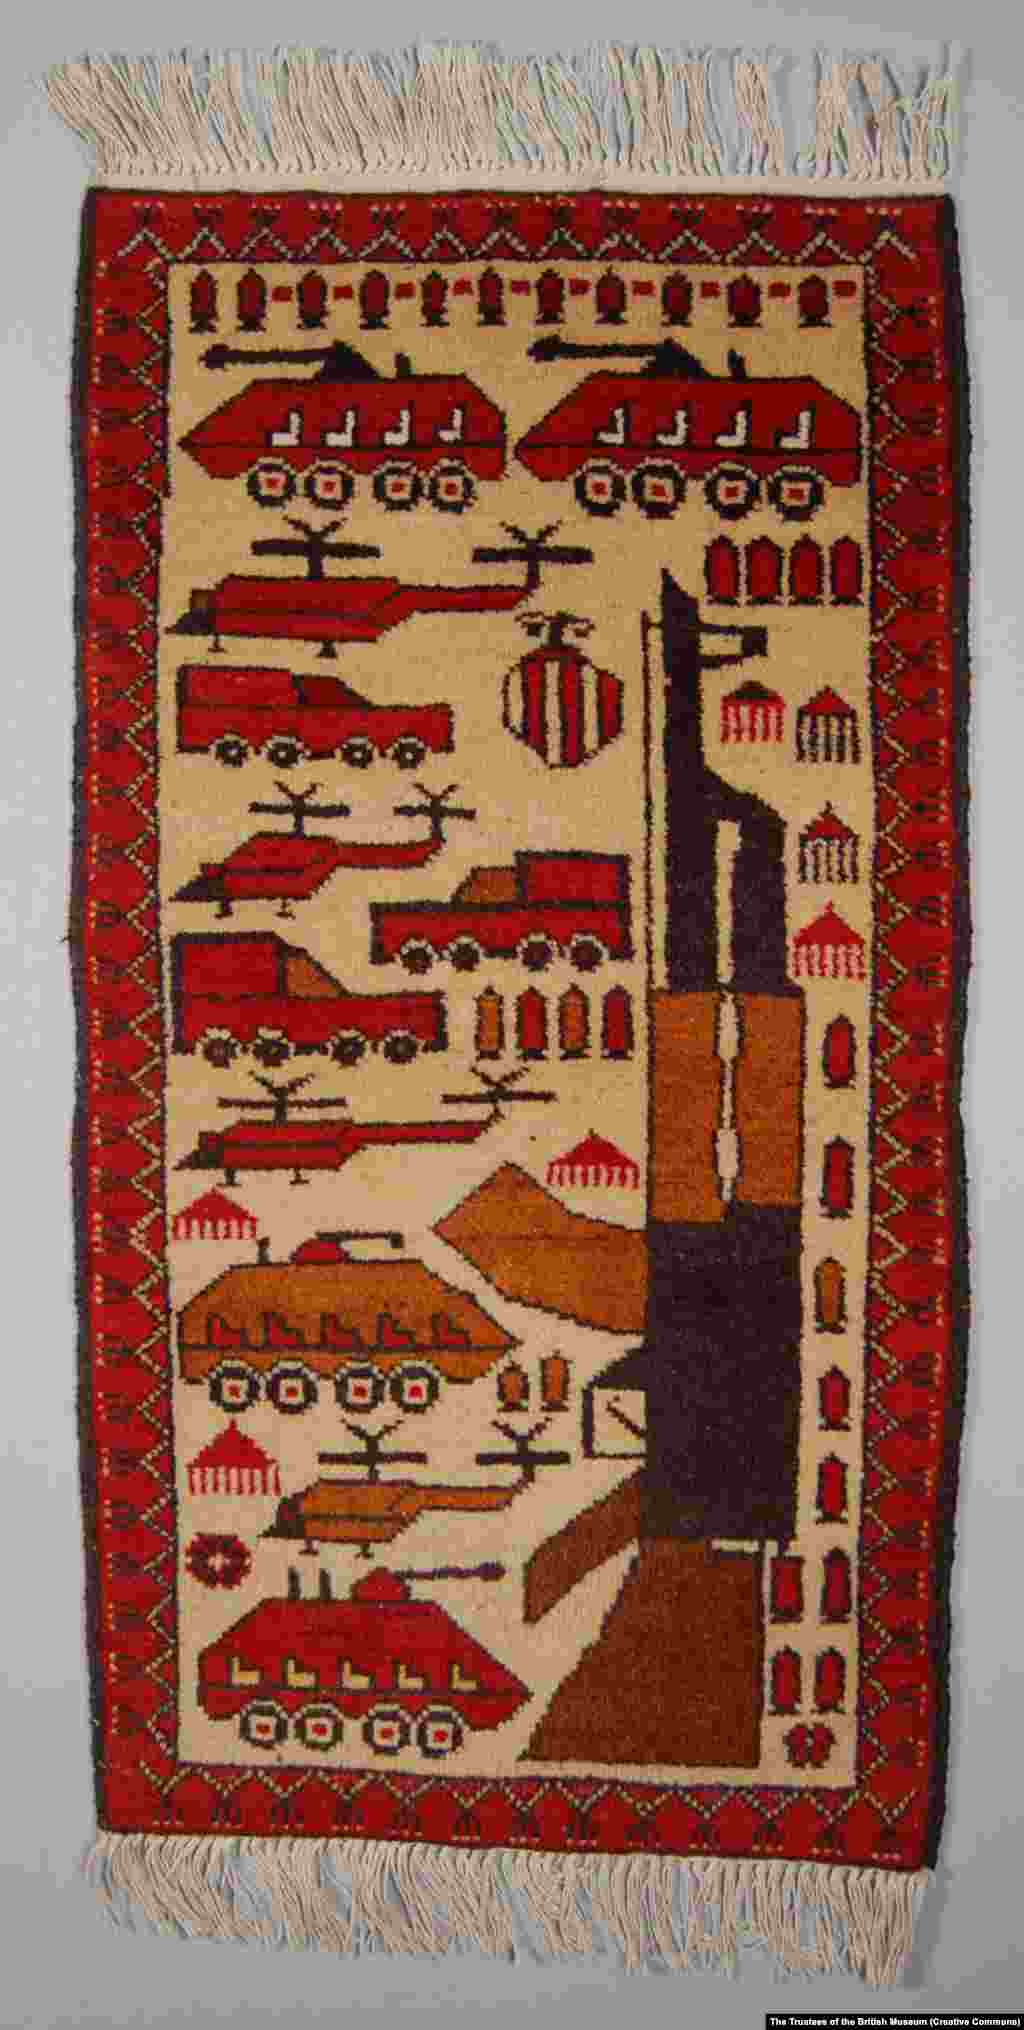 "Yar says: ""In 1980 and '81 some [war rugs] came to [West] Germany. It was during the Cold War, so it was interesting for Western people and they bought it, like a piece of history showing the Soviet Army in Afghanistan. When the merchants saw that there [was] a market for it, they ordered more from weavers in the north of Afghanistan. And they made a lot of pieces with guns and tanks, etc."""